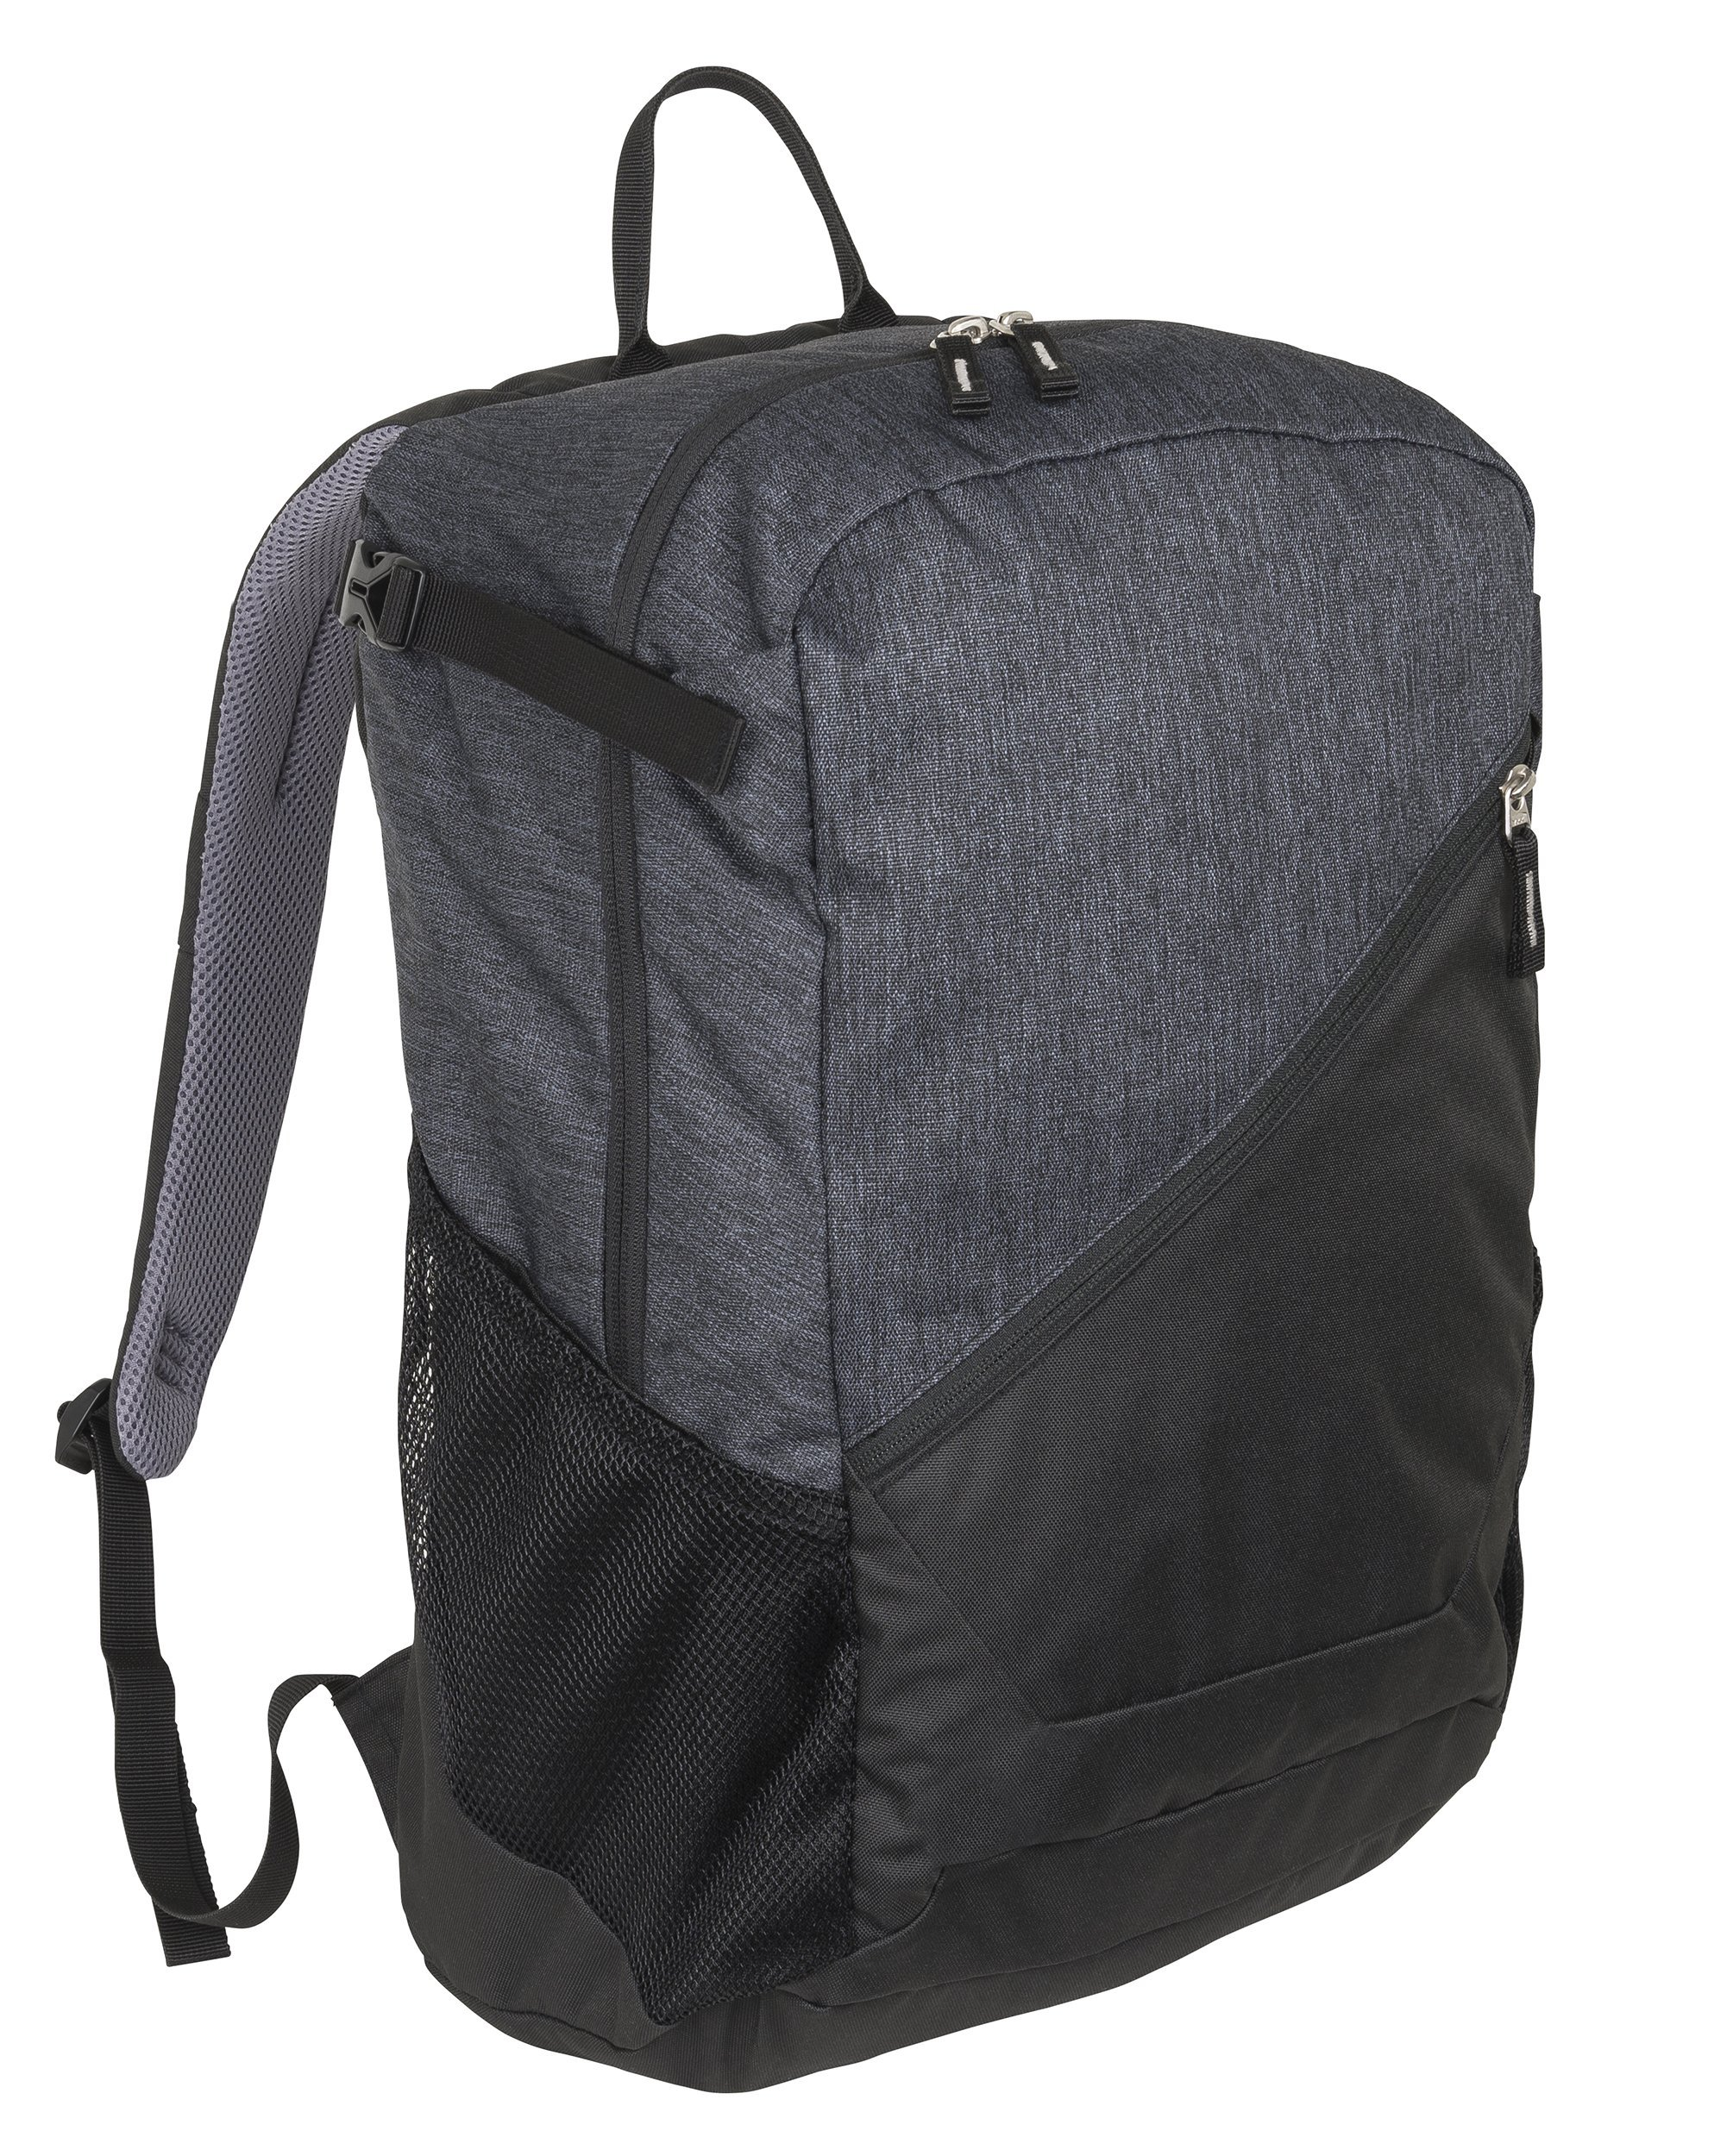 ahg-pistol back pack